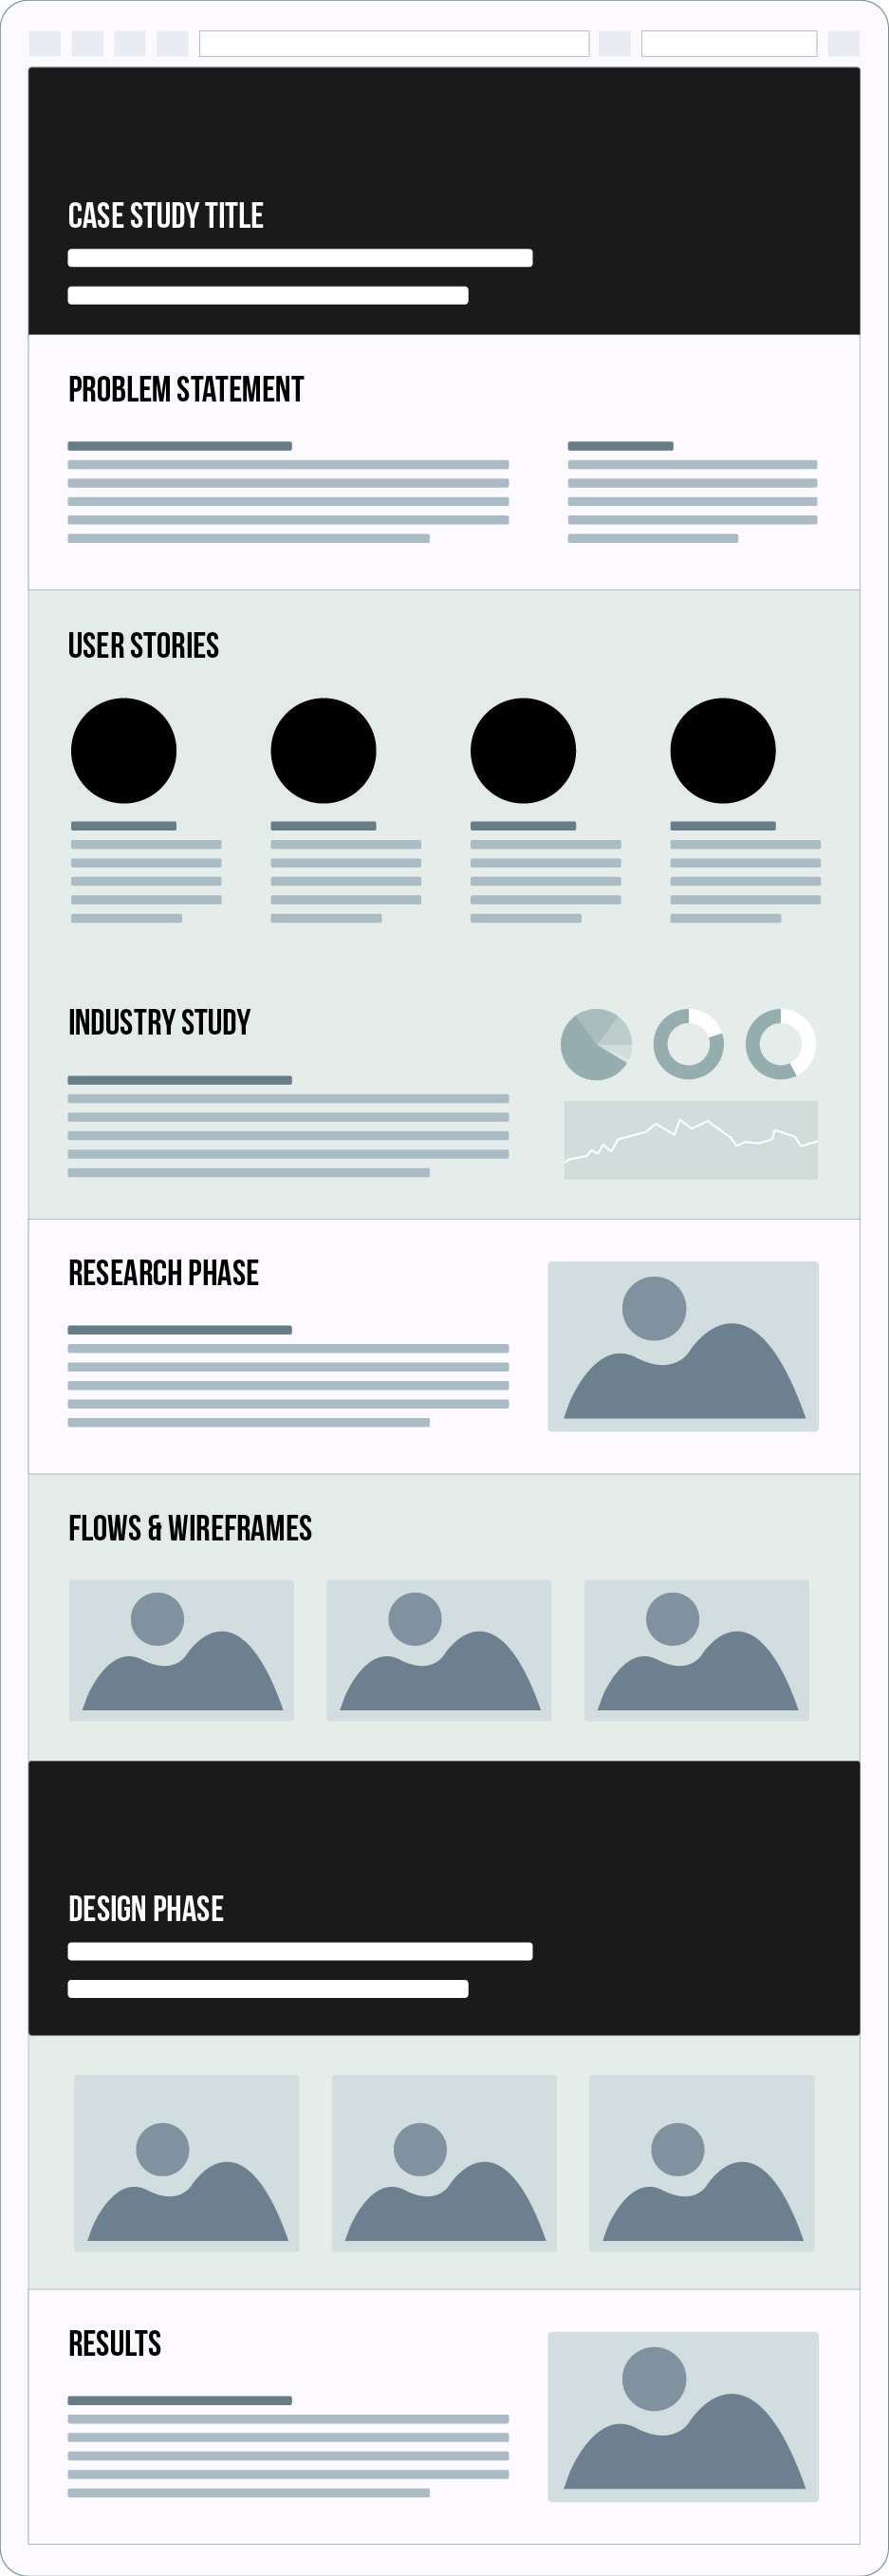 Ux Case Study  Free Wireframe Asset Eps  Wireframe User